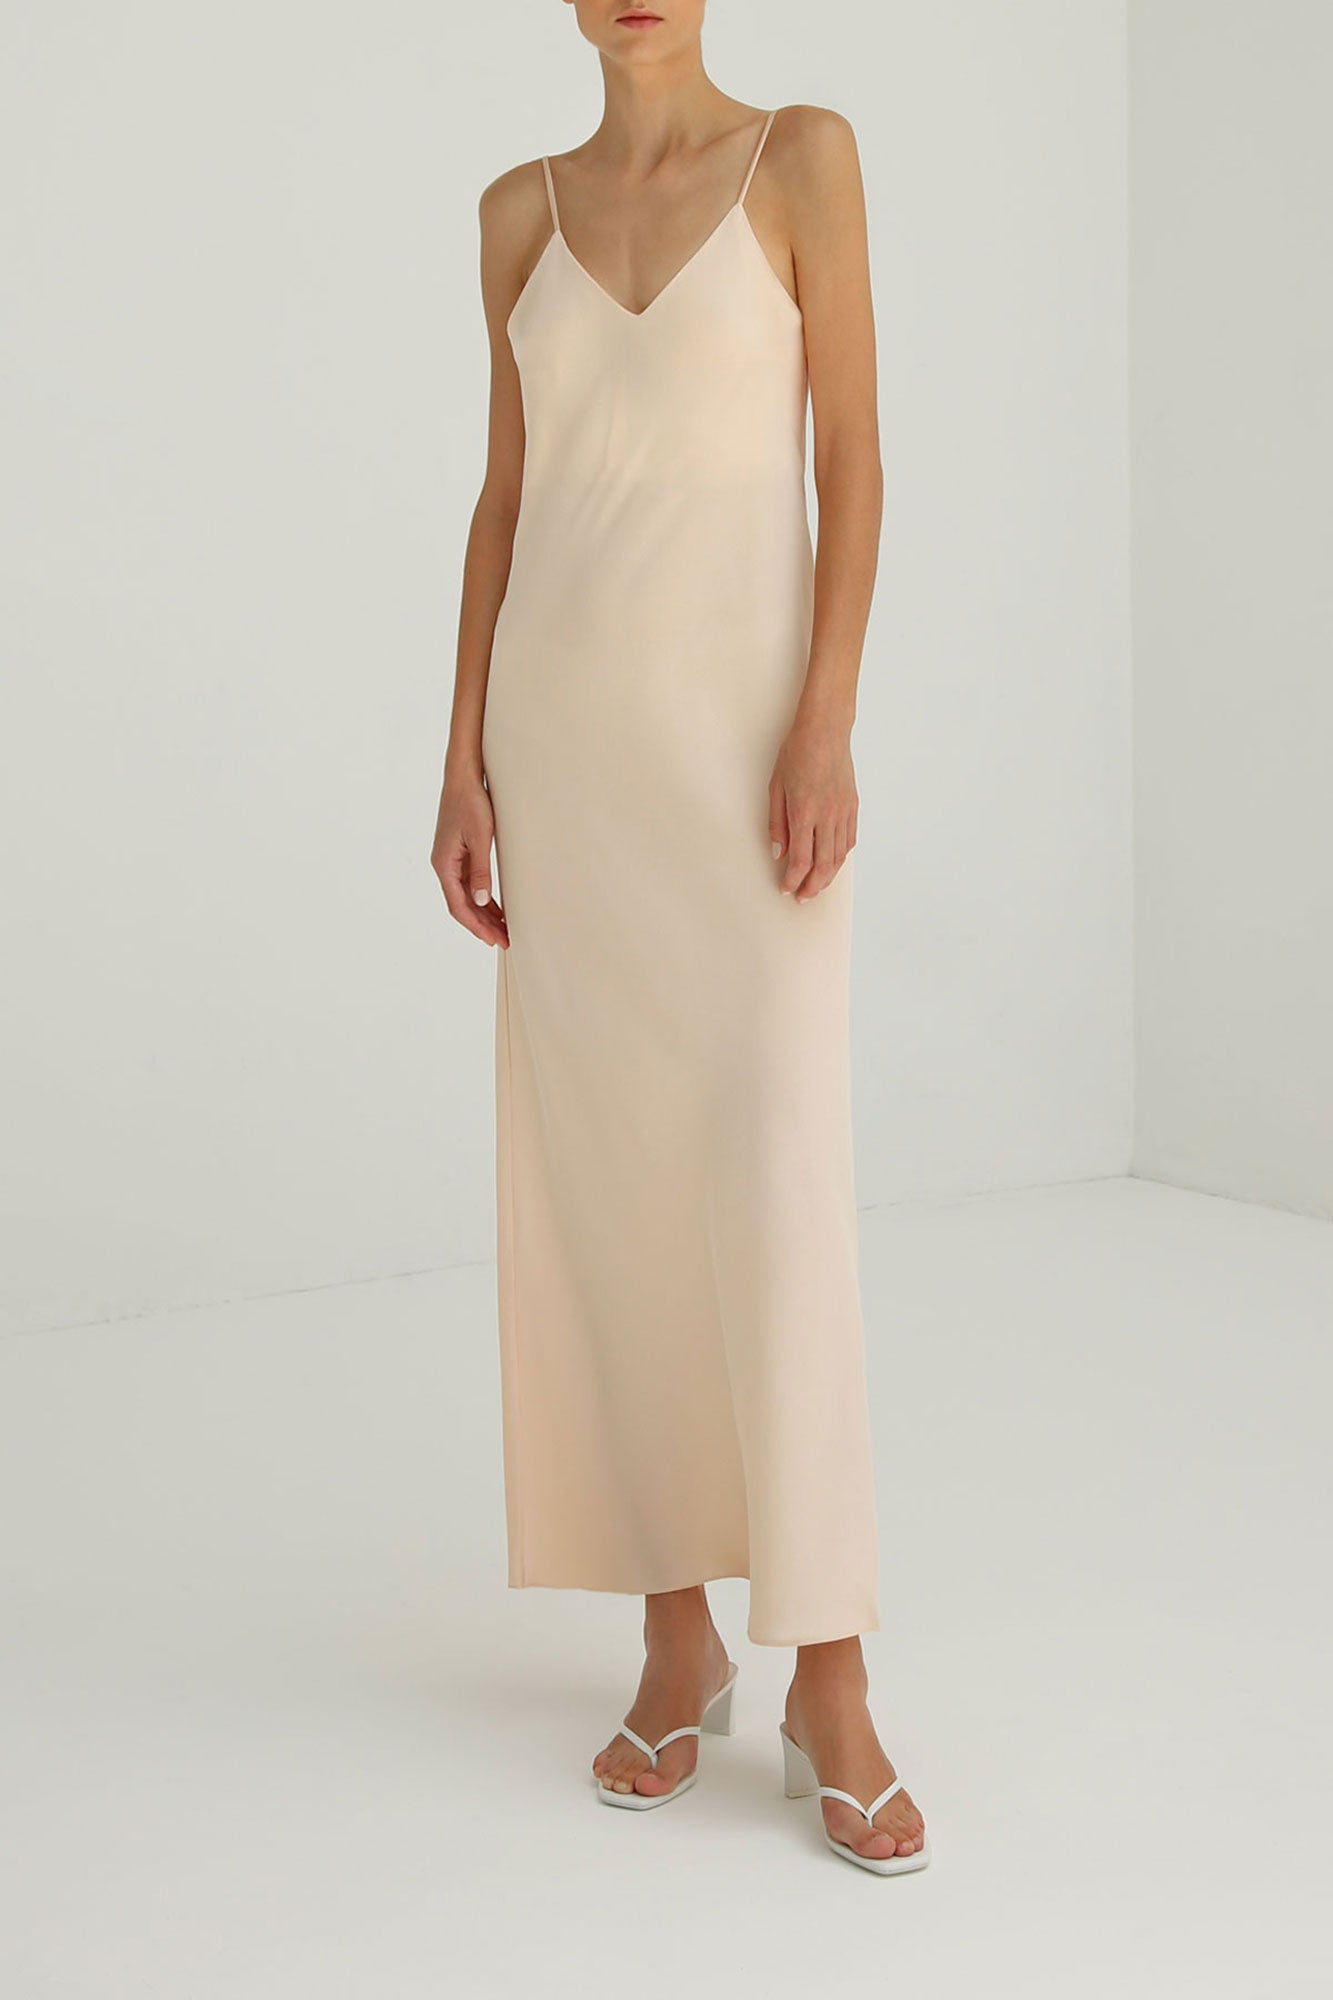 Pearl Slip dress in Nude